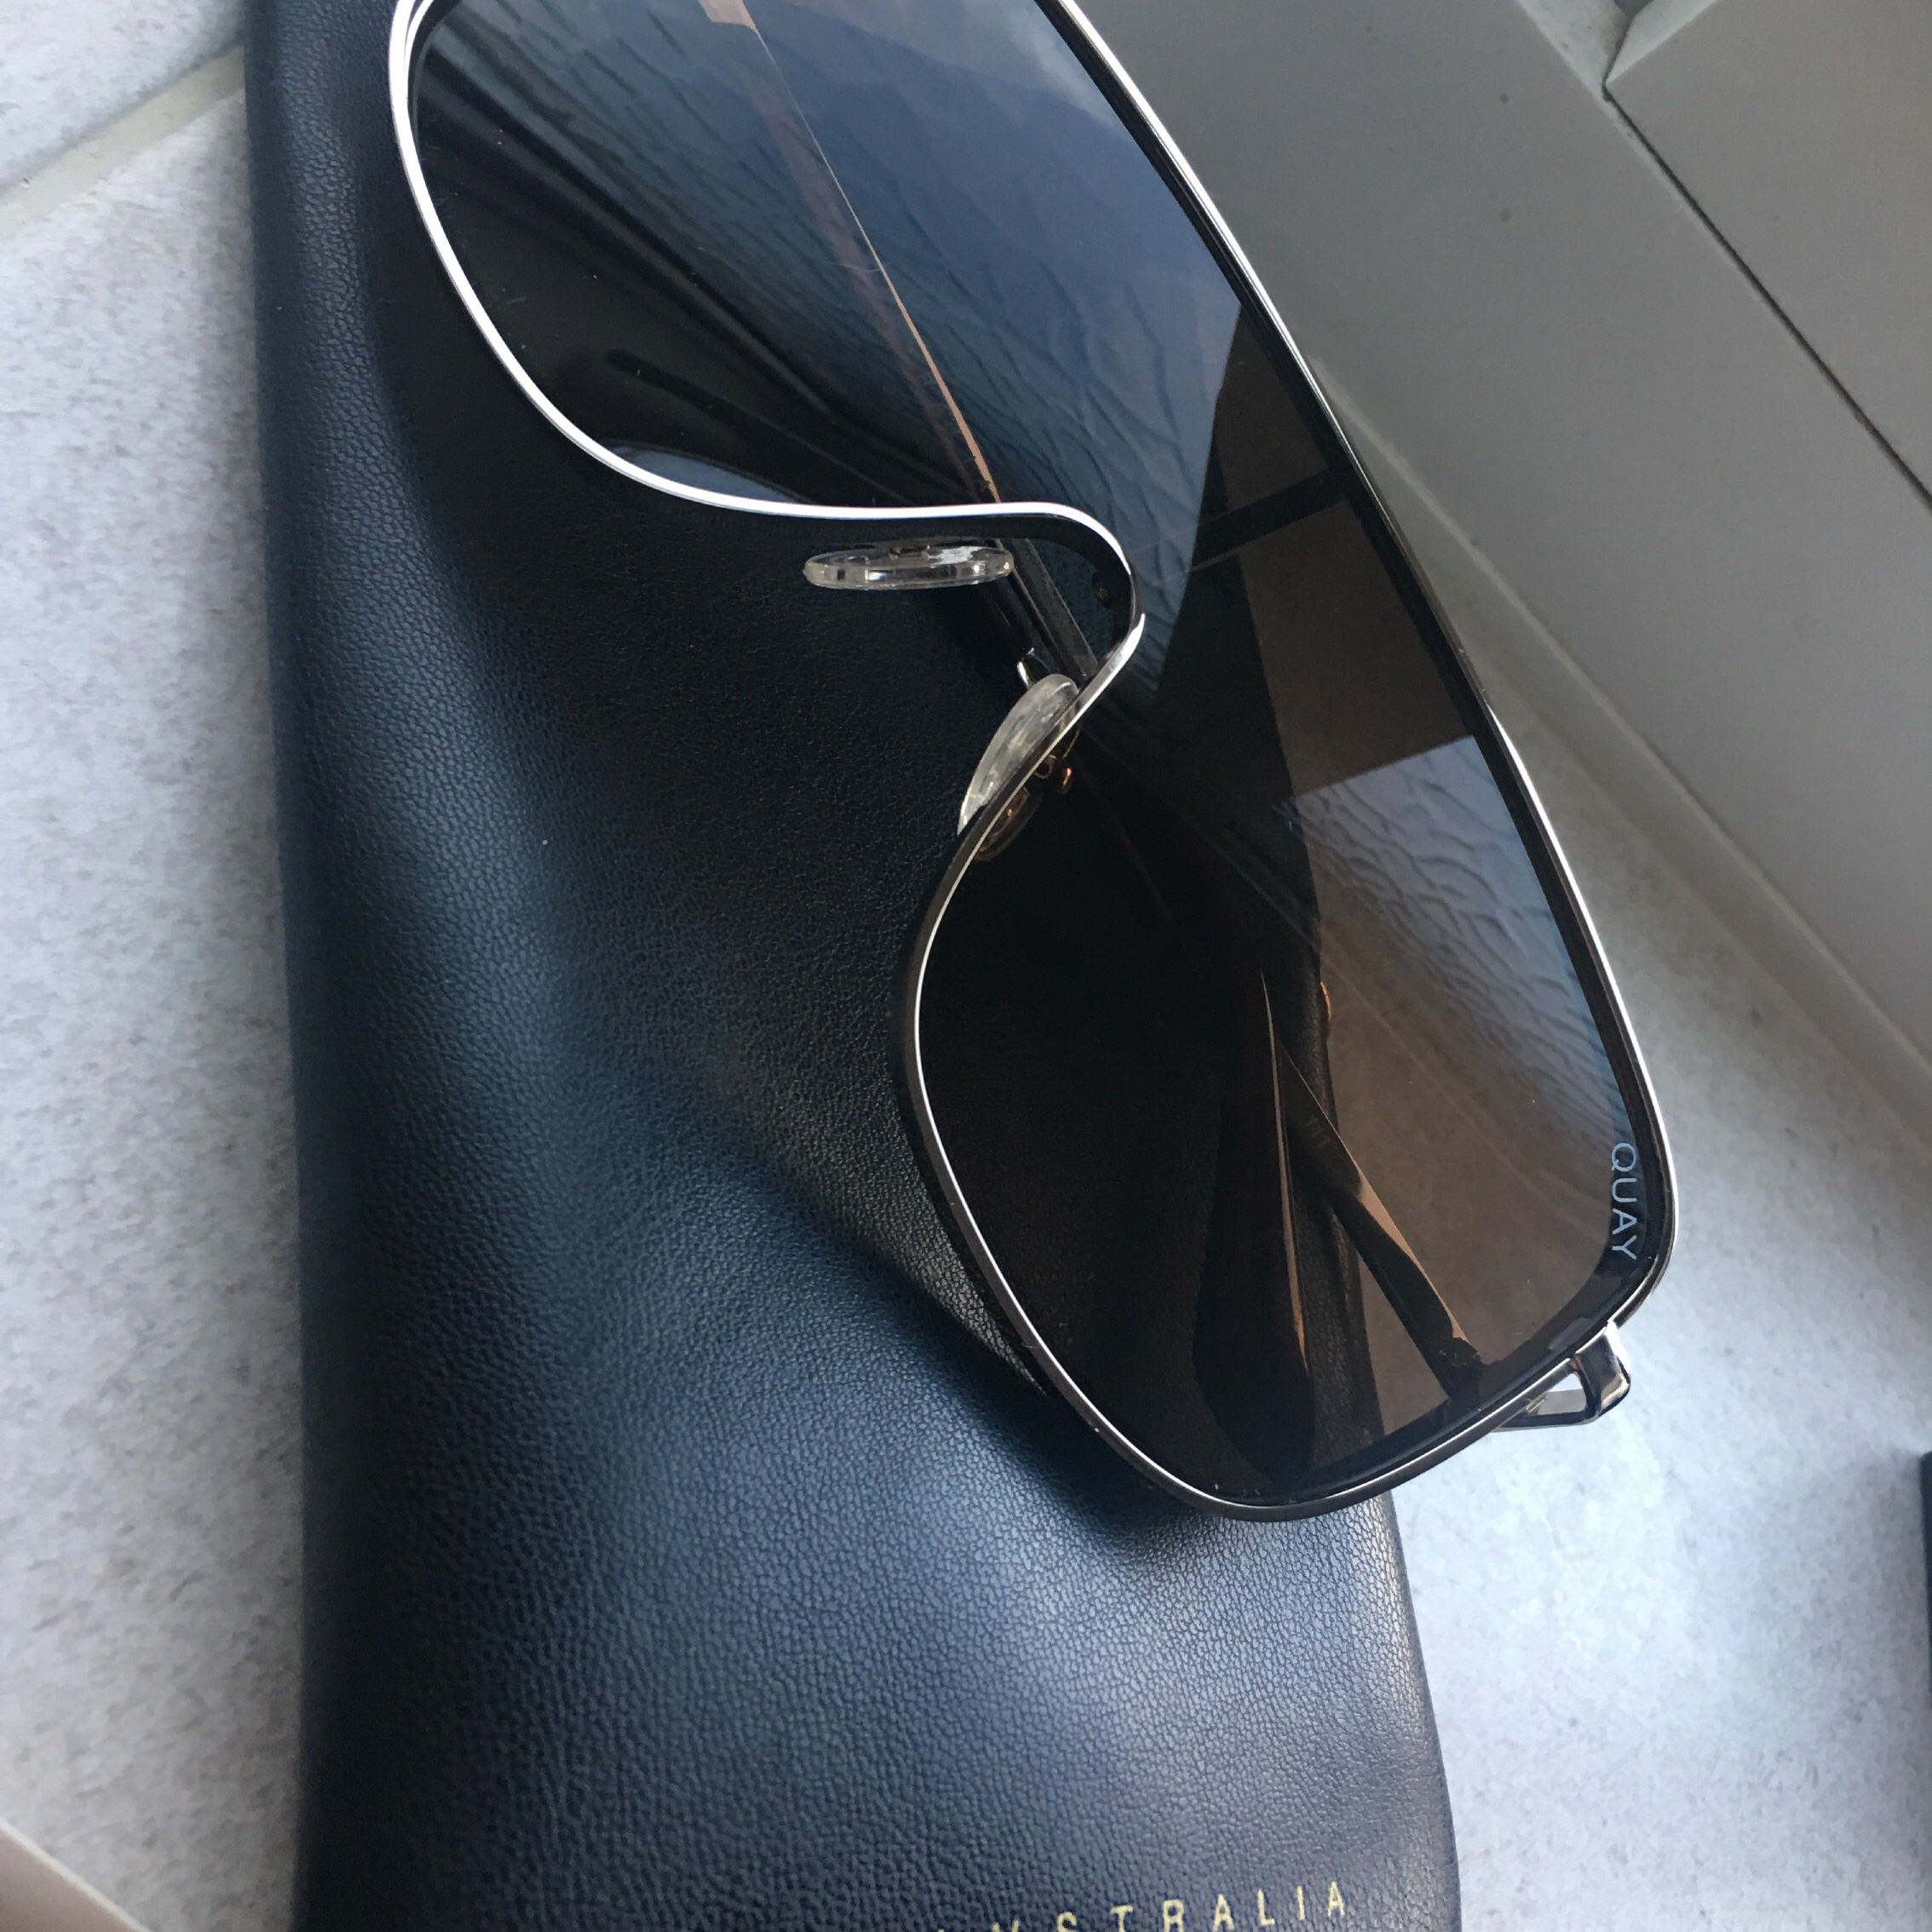 2310c2e7d6 Kylie Jenner x QUAY Unbothered Sunglasses + Pouch Brand  - Depop